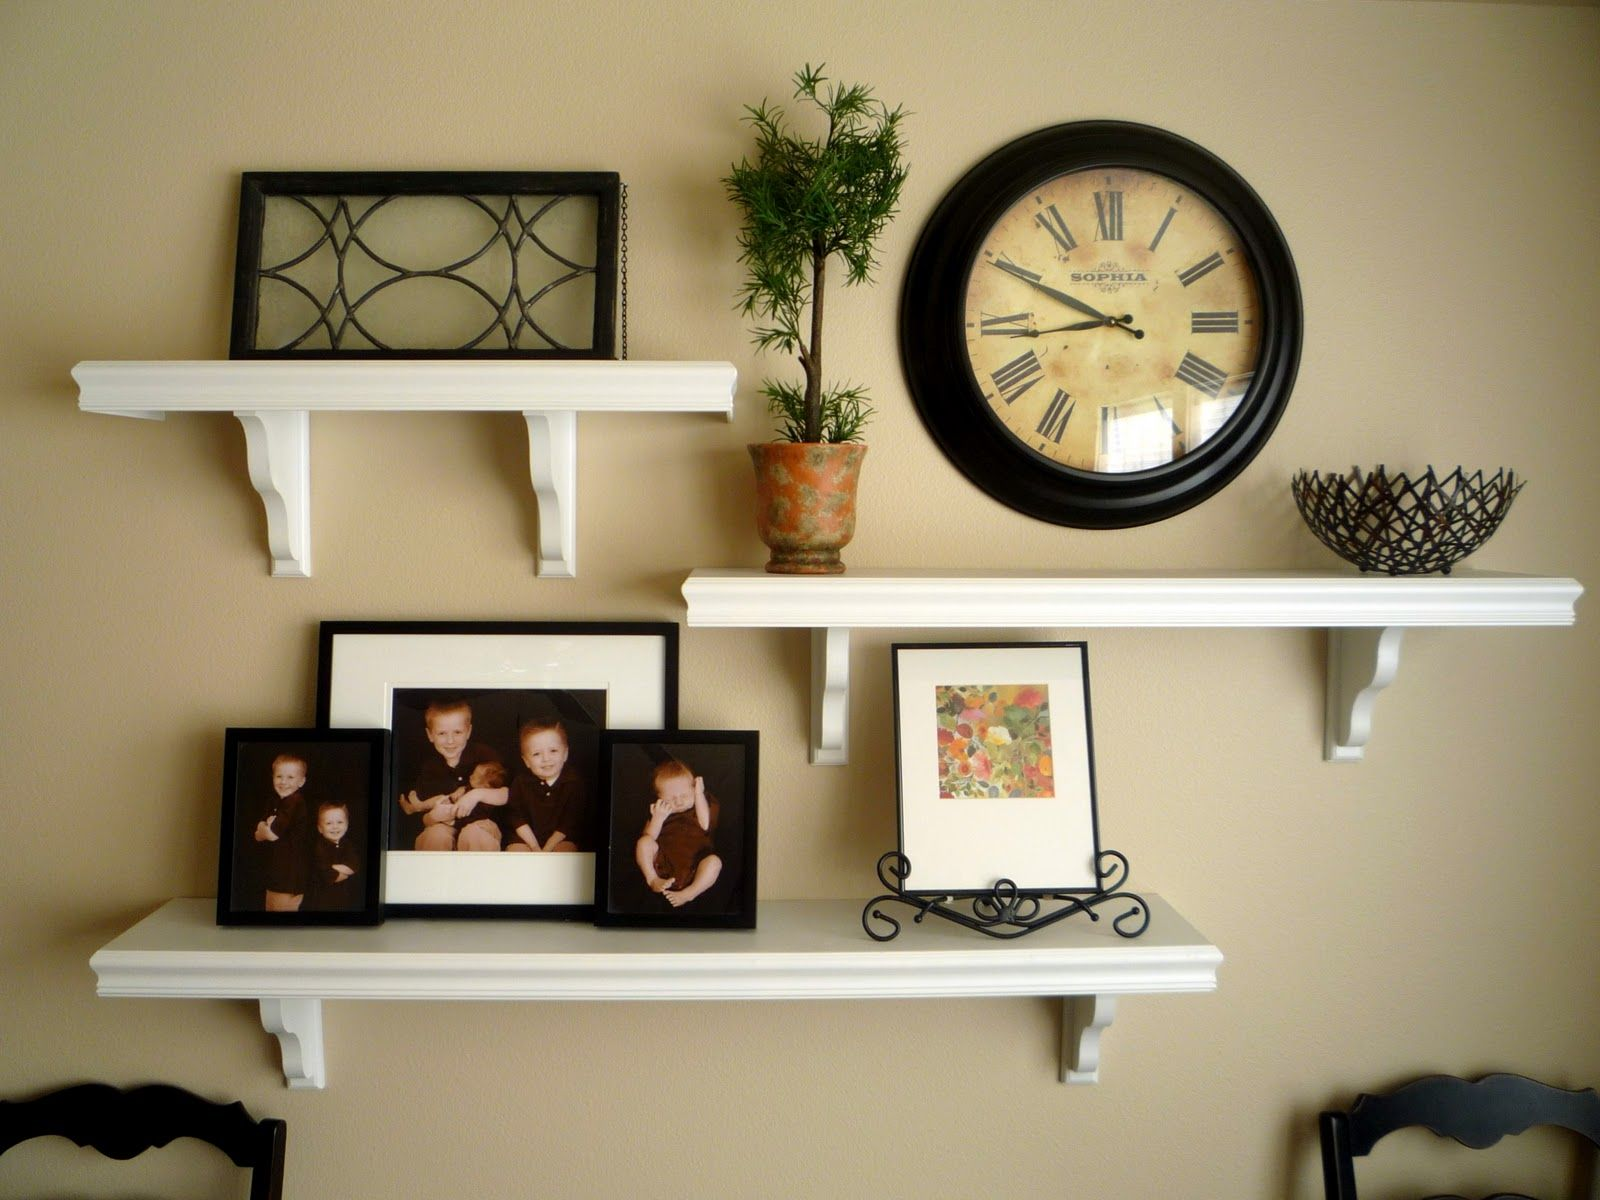 Picture And Shelves On Wall Together It All Started